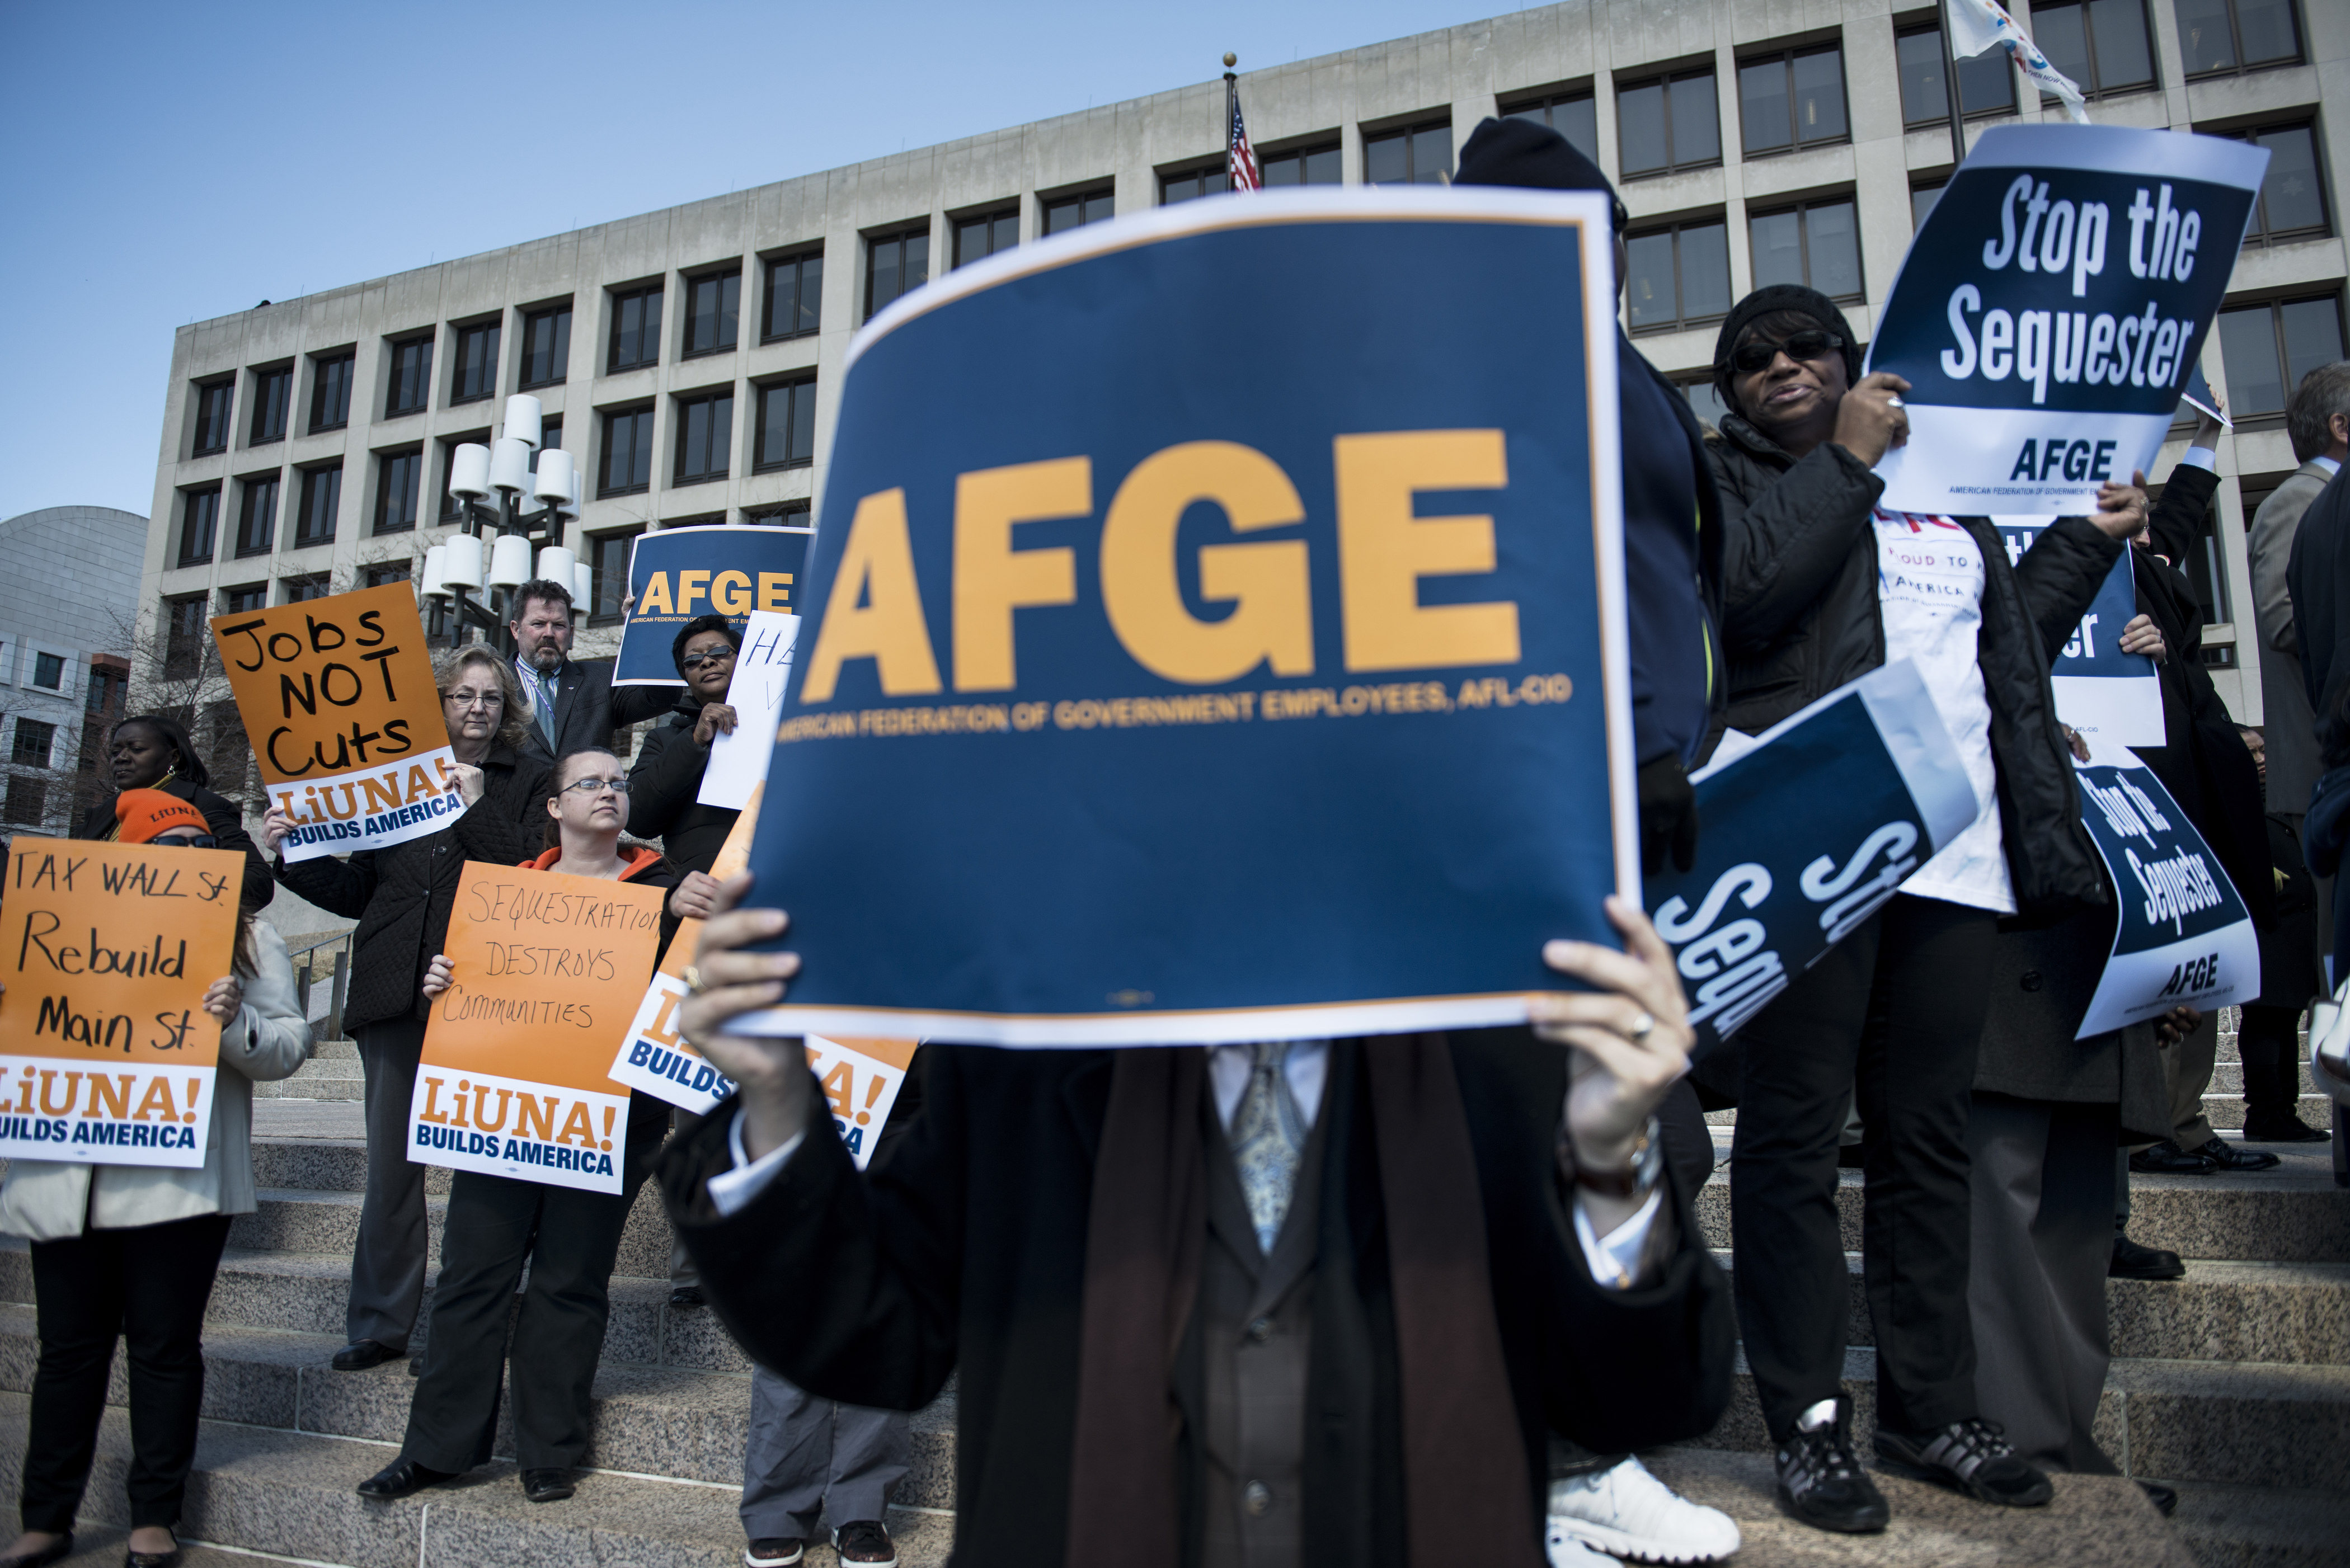 Members of the American Federation of Government Employees(AFGE) and members Laborers International Union of North America(LiUNA) gather during a rally on outside the Department of Labor on March 20, 2013 in Washington, DC. The demonstrators gathered to protest the effects of the government sequester. AFP PHOTO/Brendan SMIALOWSKI (Photo credit should read BRENDAN SMIALOWSKI/AFP via Getty Images)